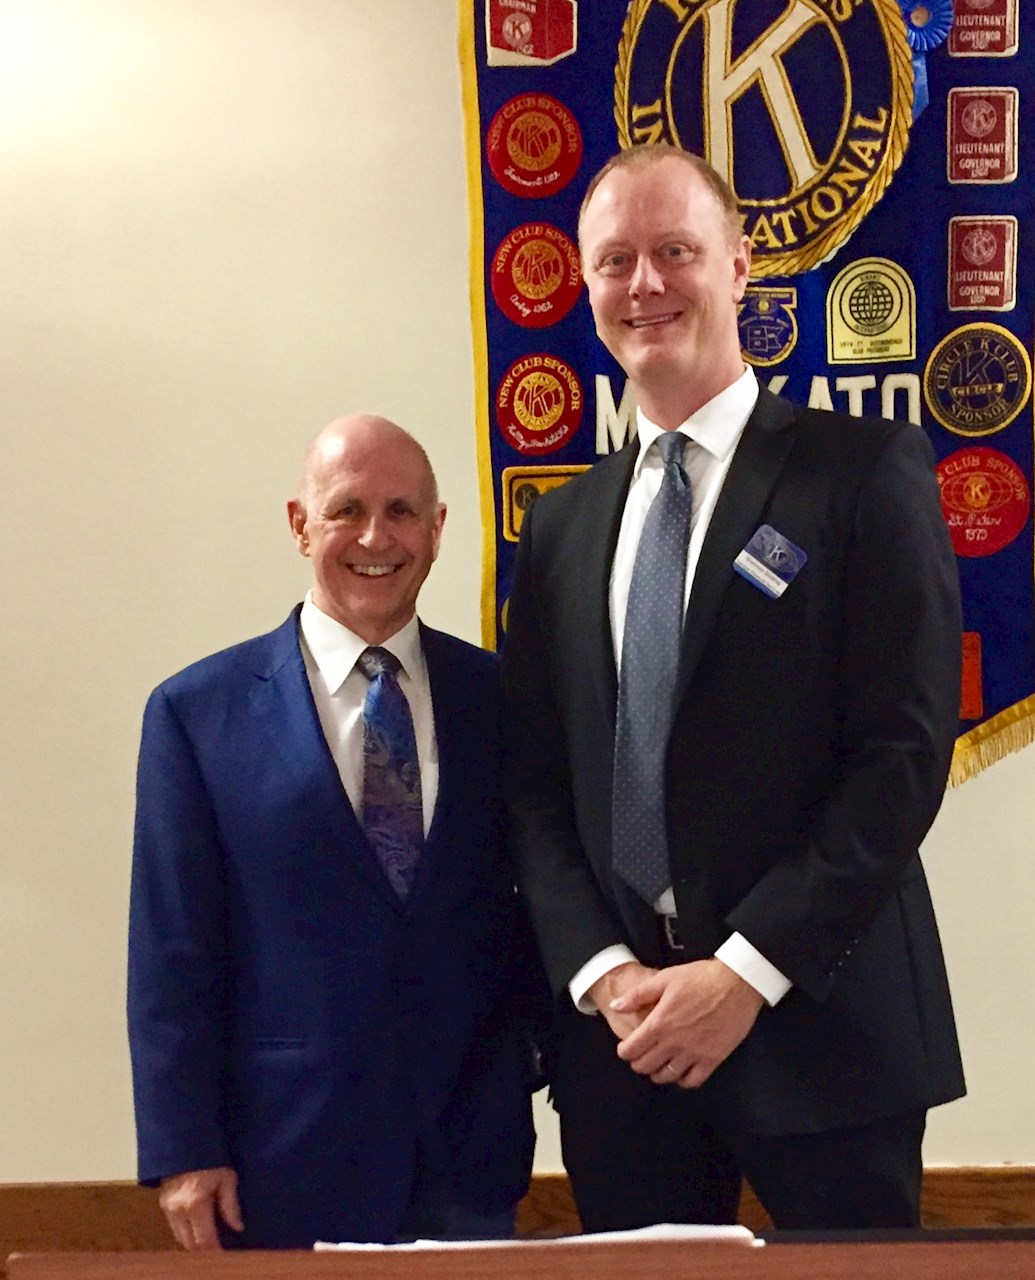 Mankato Kiwanis International The Creative Science Centre By Dr Jonathan P Hare Bill Lewinski Founder And Director Of Force Institute Spoke To Our Club On August 14 2017 About Policing In An Adverse Society